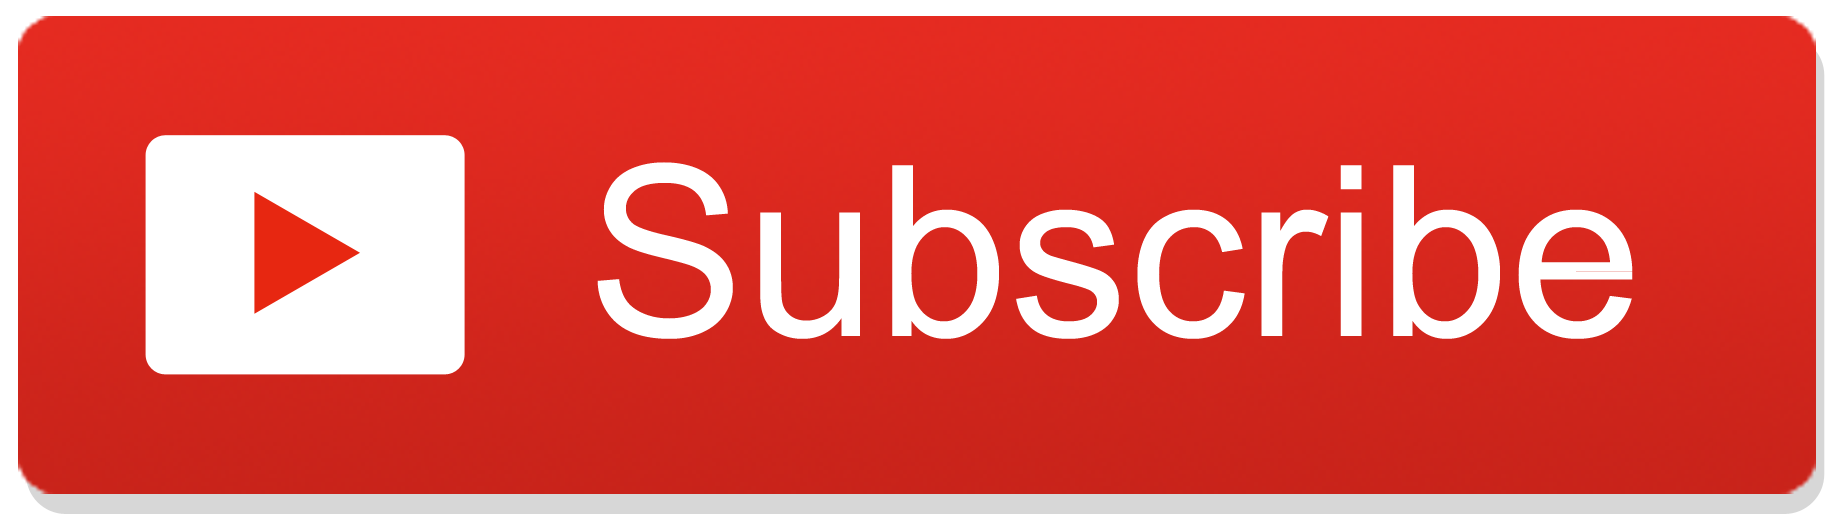 Youtube Subscribe Button Classic Png image #39347